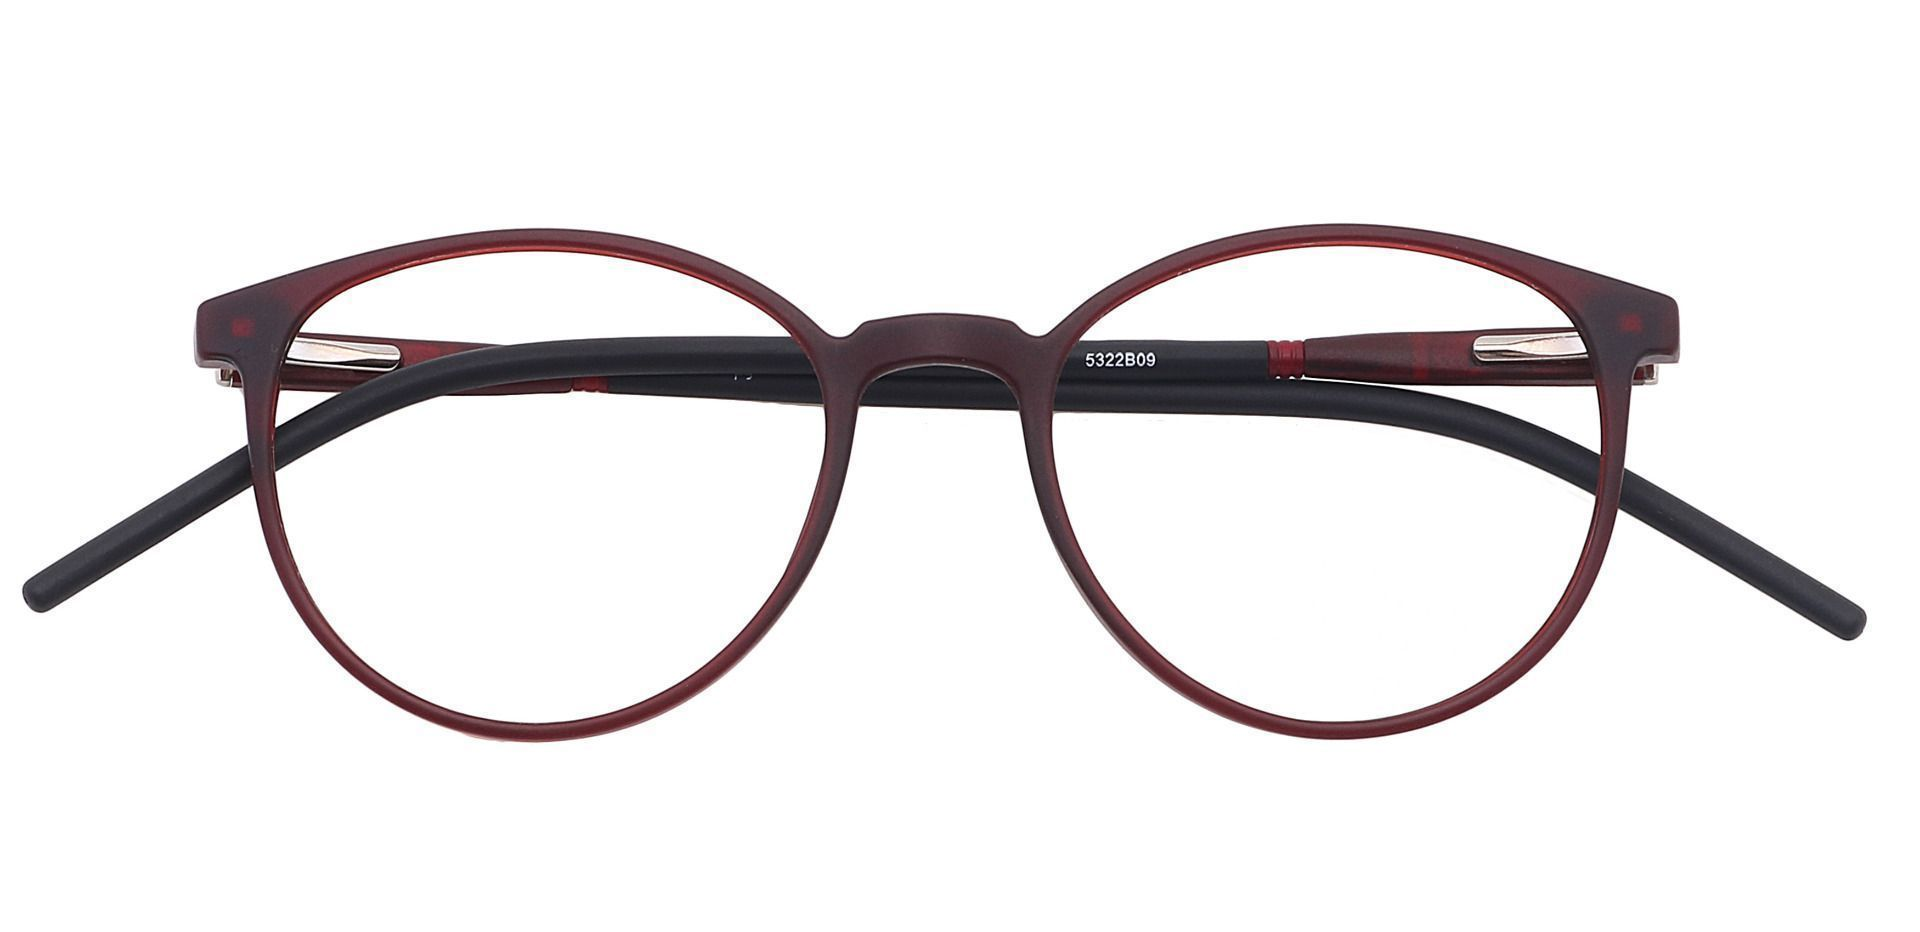 Vivi Round Prescription Glasses - Brown